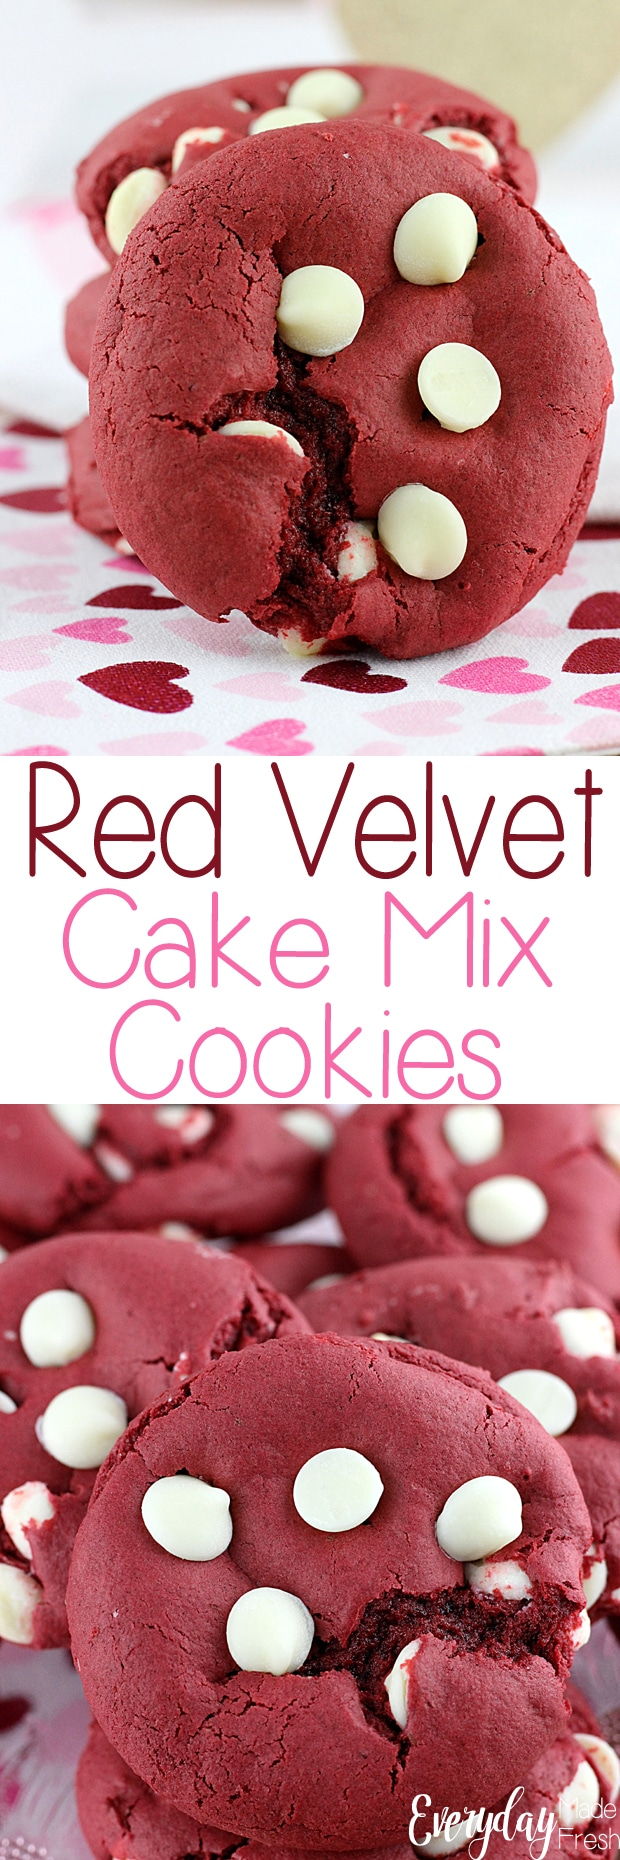 3 ingredients + chocolate chips is all you need to make these Red Velvet Cake Mix Cookies. This base recipe can be made with ANY cake mix, making cookie flavor possibilities endless. | EverydayMadeFresh.com